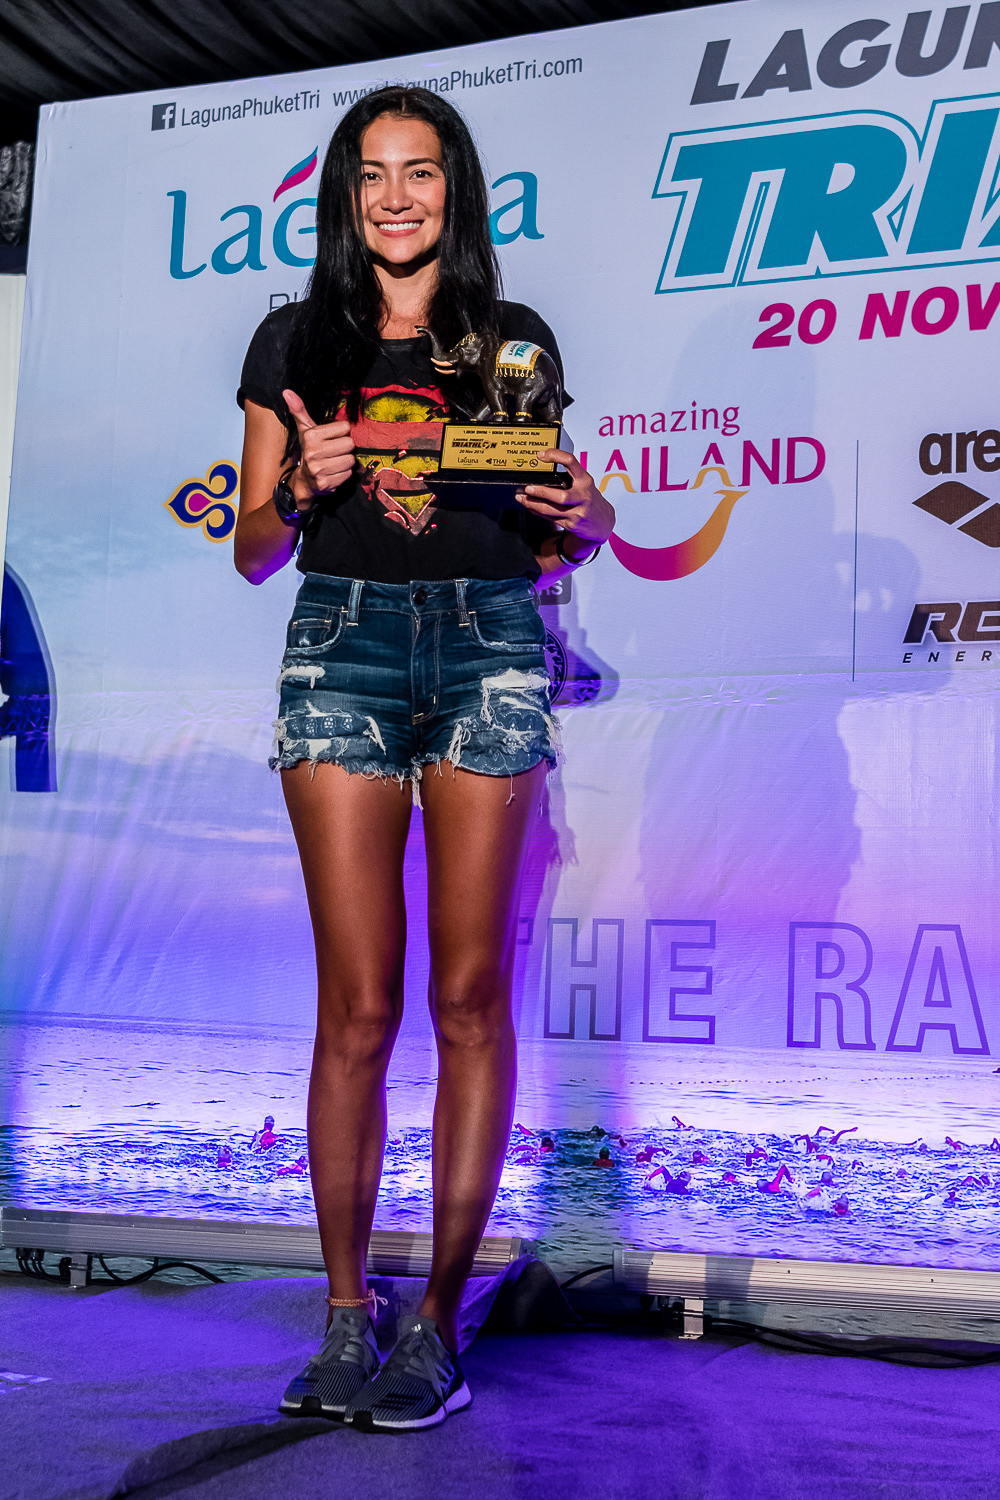 PHUKET, THAILAND - NOVEMBER 20: Yossavadee Hassadeevichit	of Thailand receiving her trophy at Laguna Phuket Triathlon 2016 Banquet on November 20, 2016 at Laguna Phuket, Thailand. (Photo by: Naratip Srisupab/Thailand Photo SEALs Sports Photography)